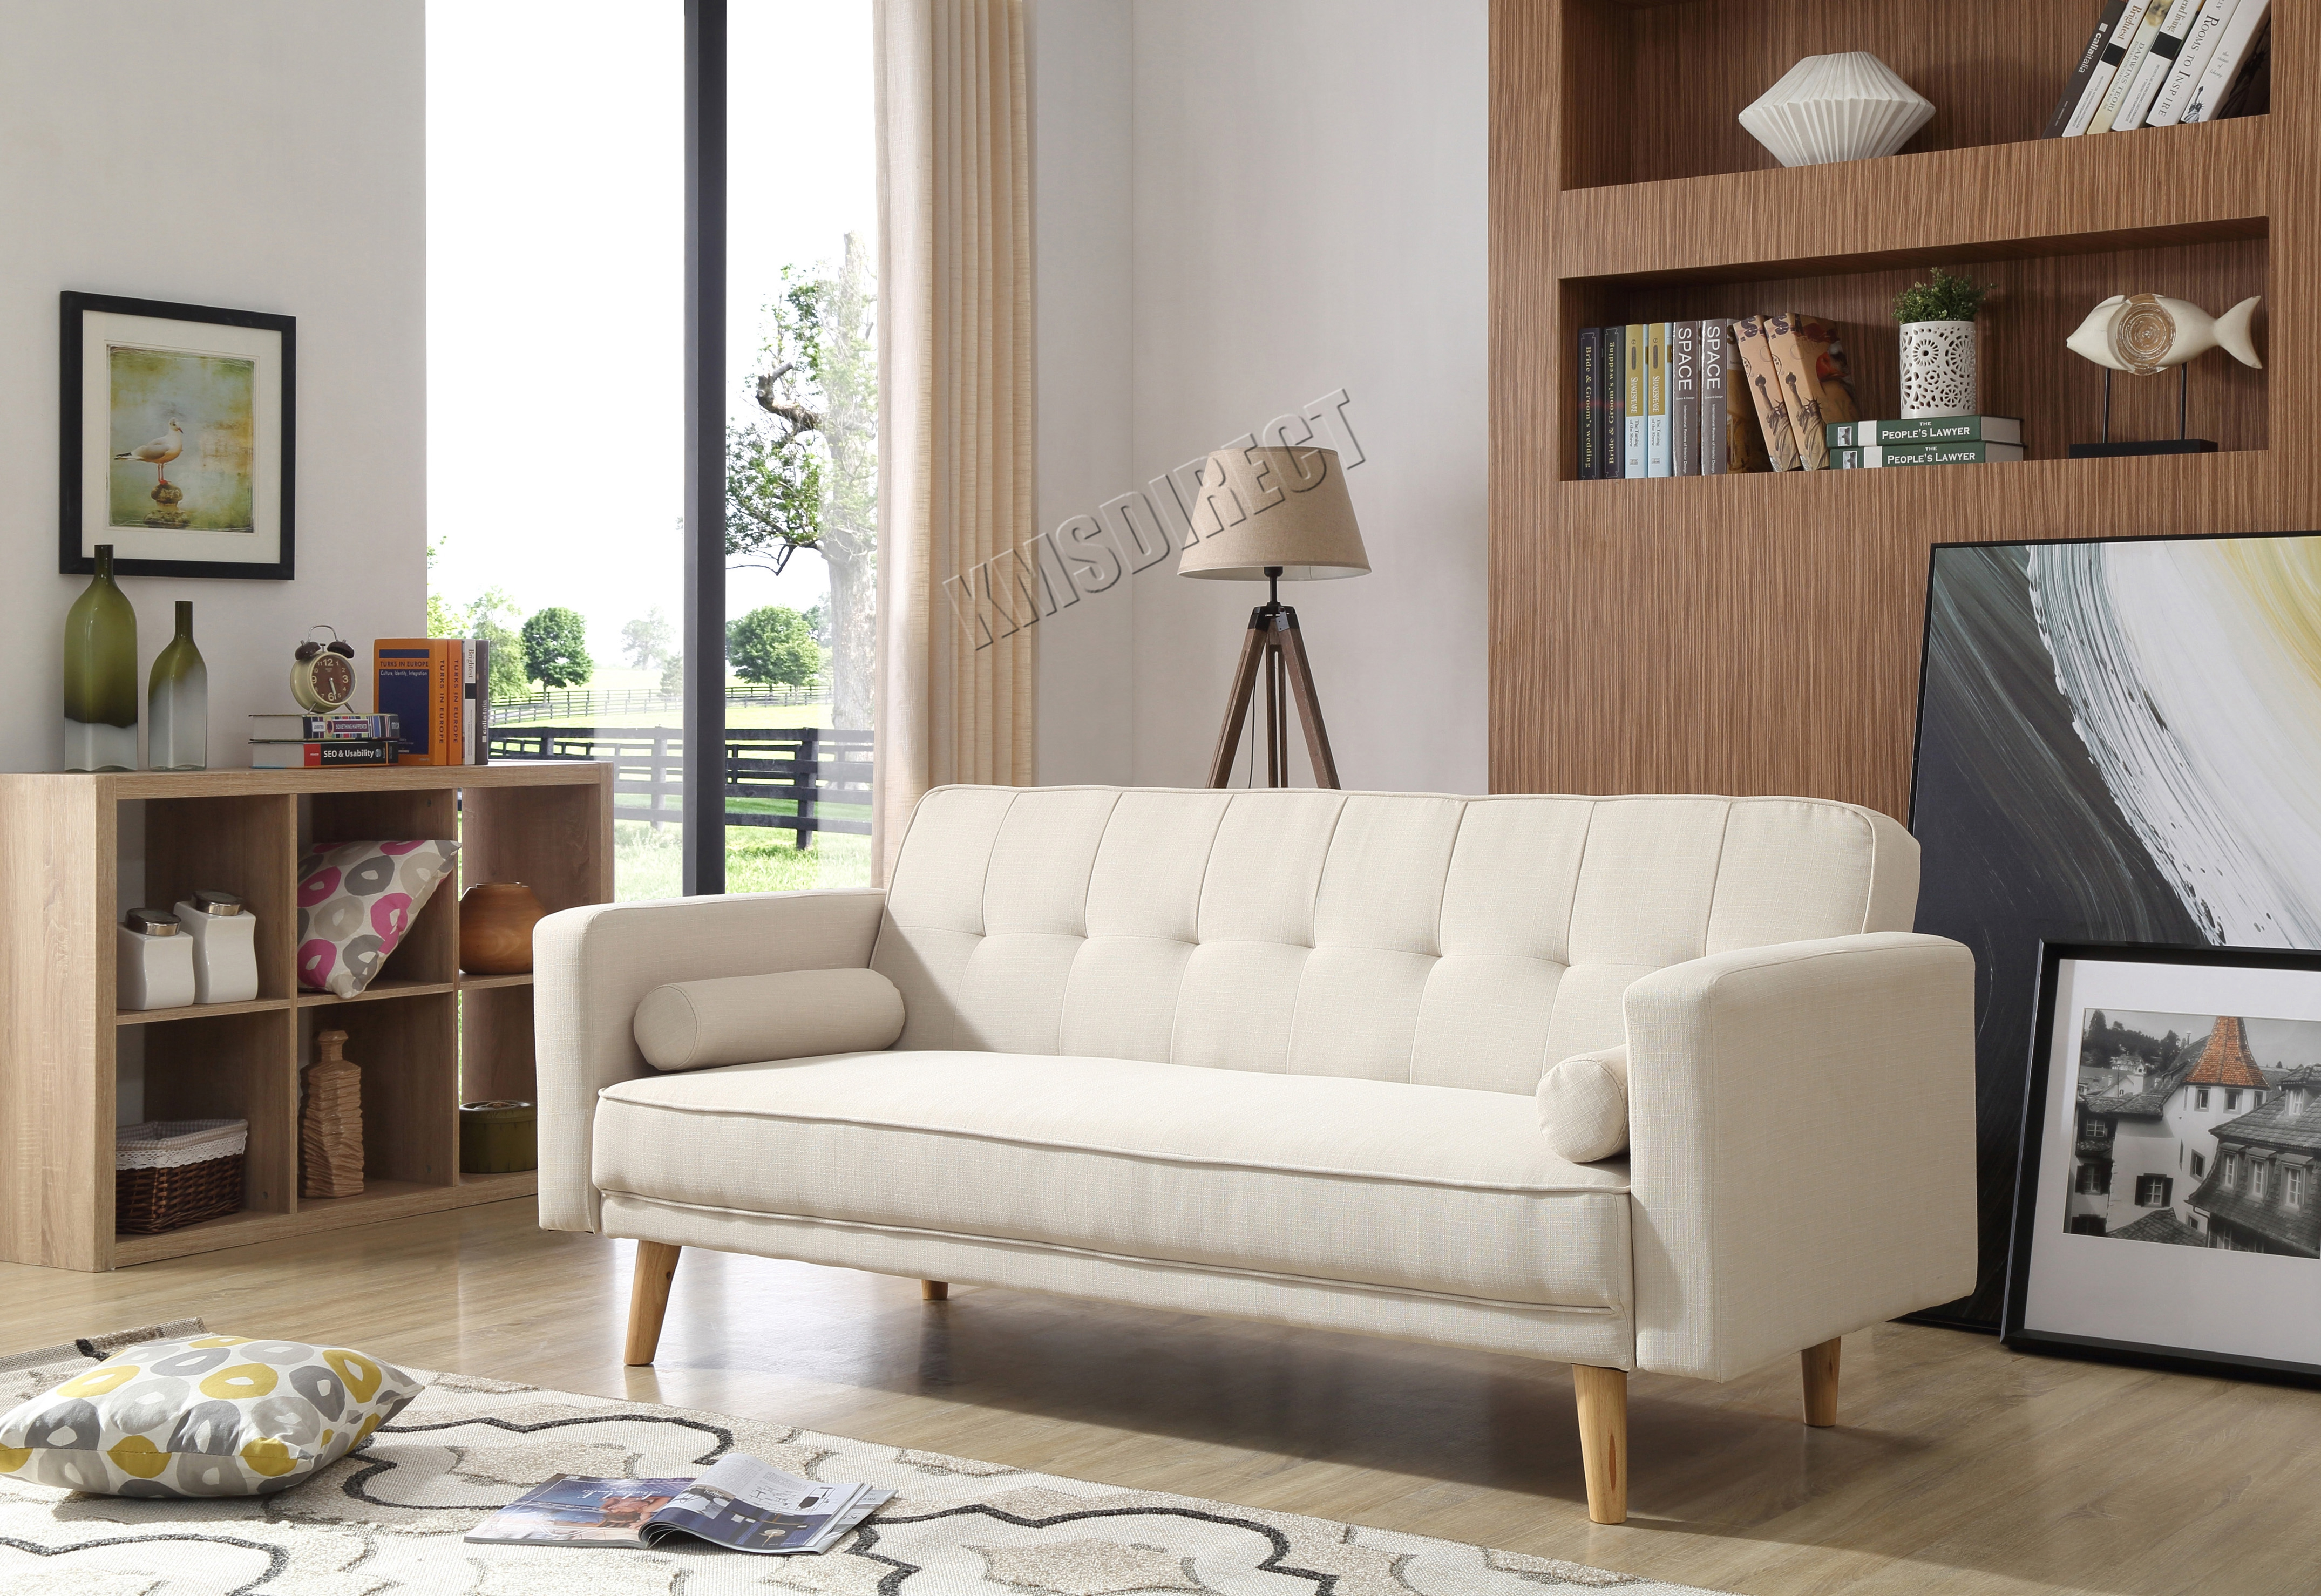 Sentinel WestWood Fabric Sofa Bed 3 Seater Couch Luxury Modern Home  Furniture FSB04 New